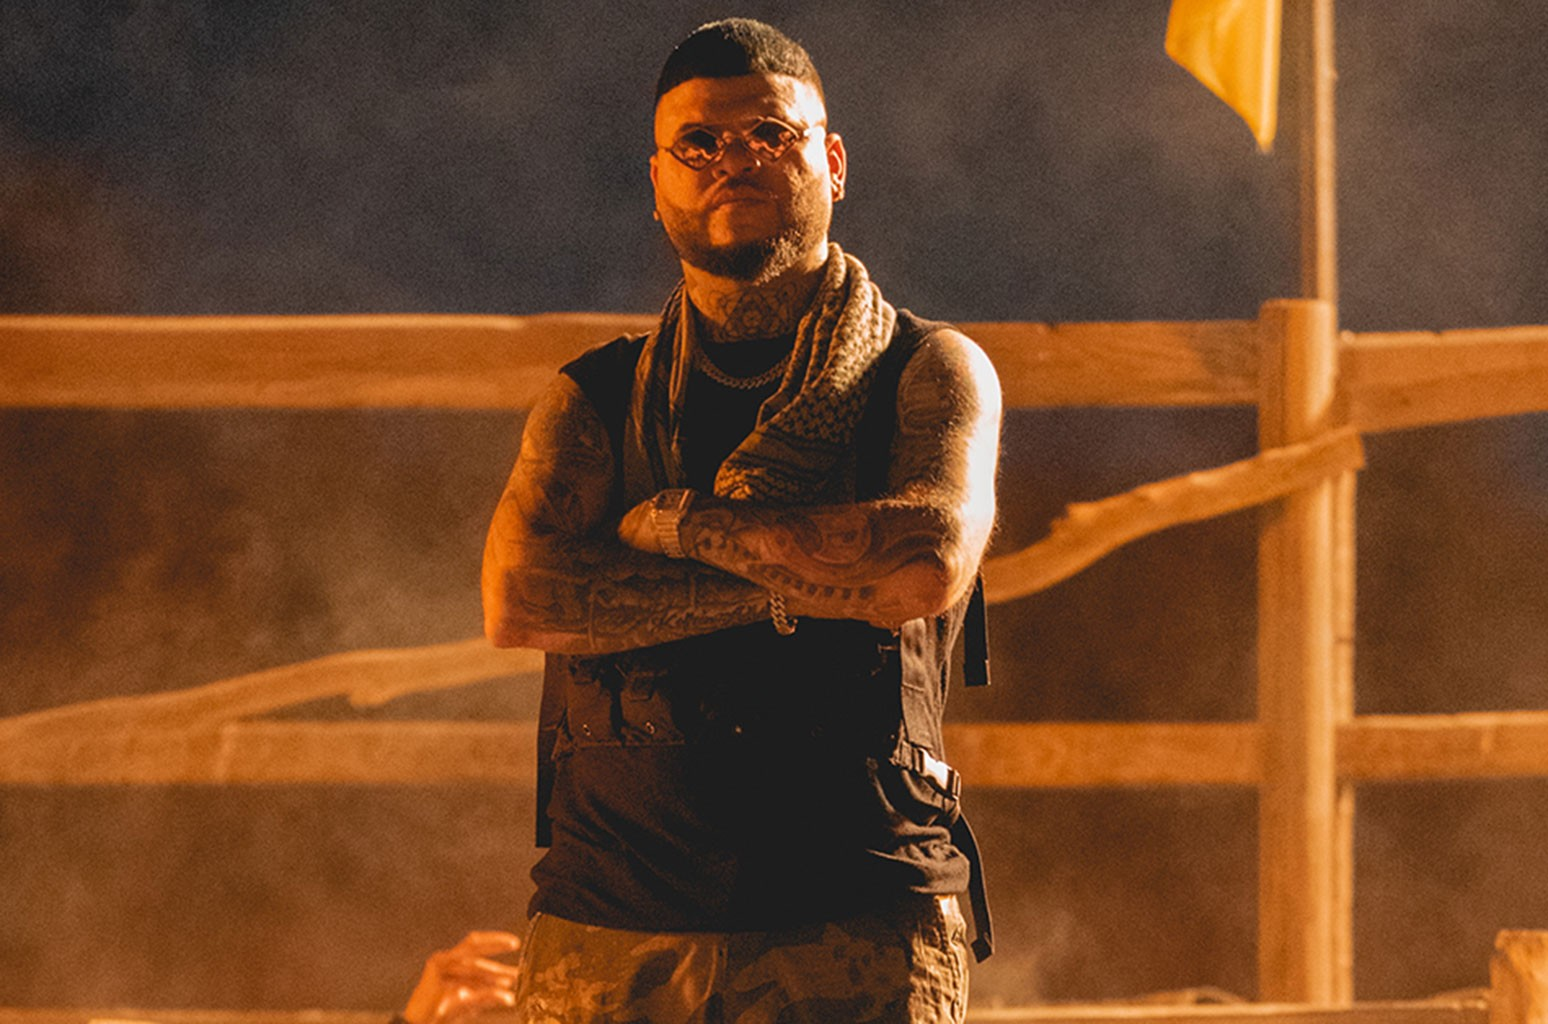 Farruko Talks Making HBO Max Music History During 'Moving Our Music Pa'lante' Panel